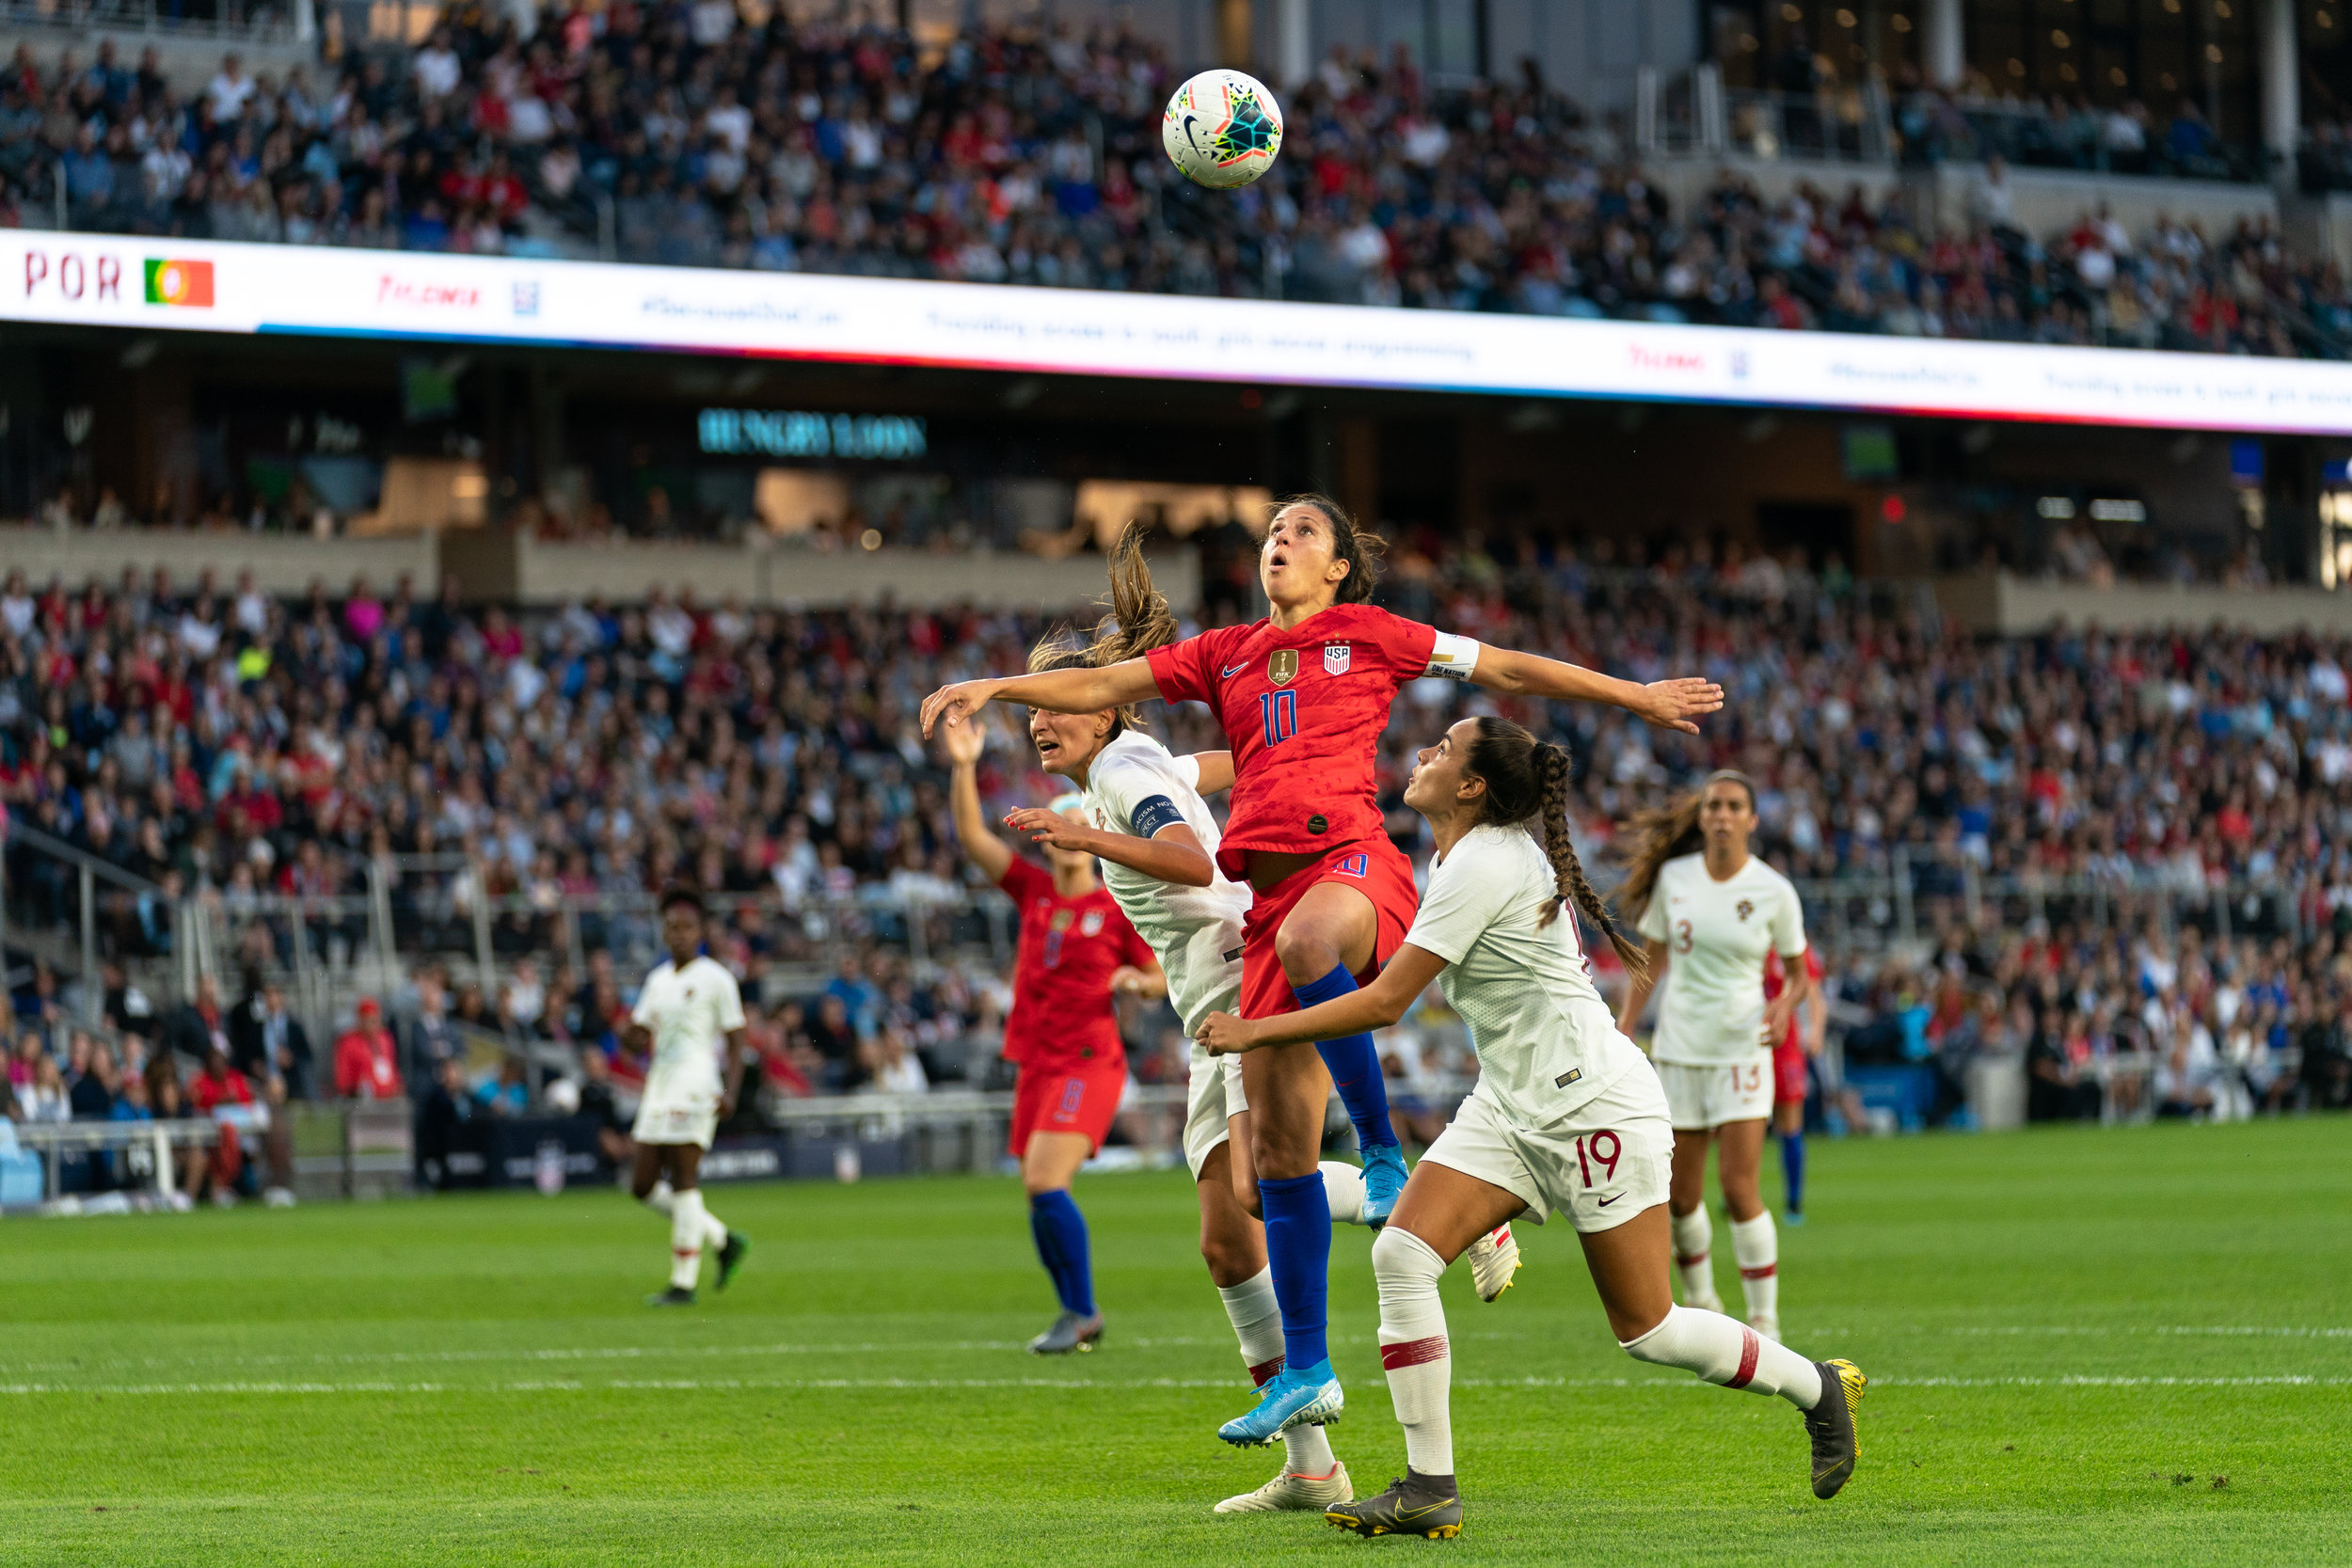 Carli Lloyd heads a ball in the USWNT's Victory Tour game against Portugal